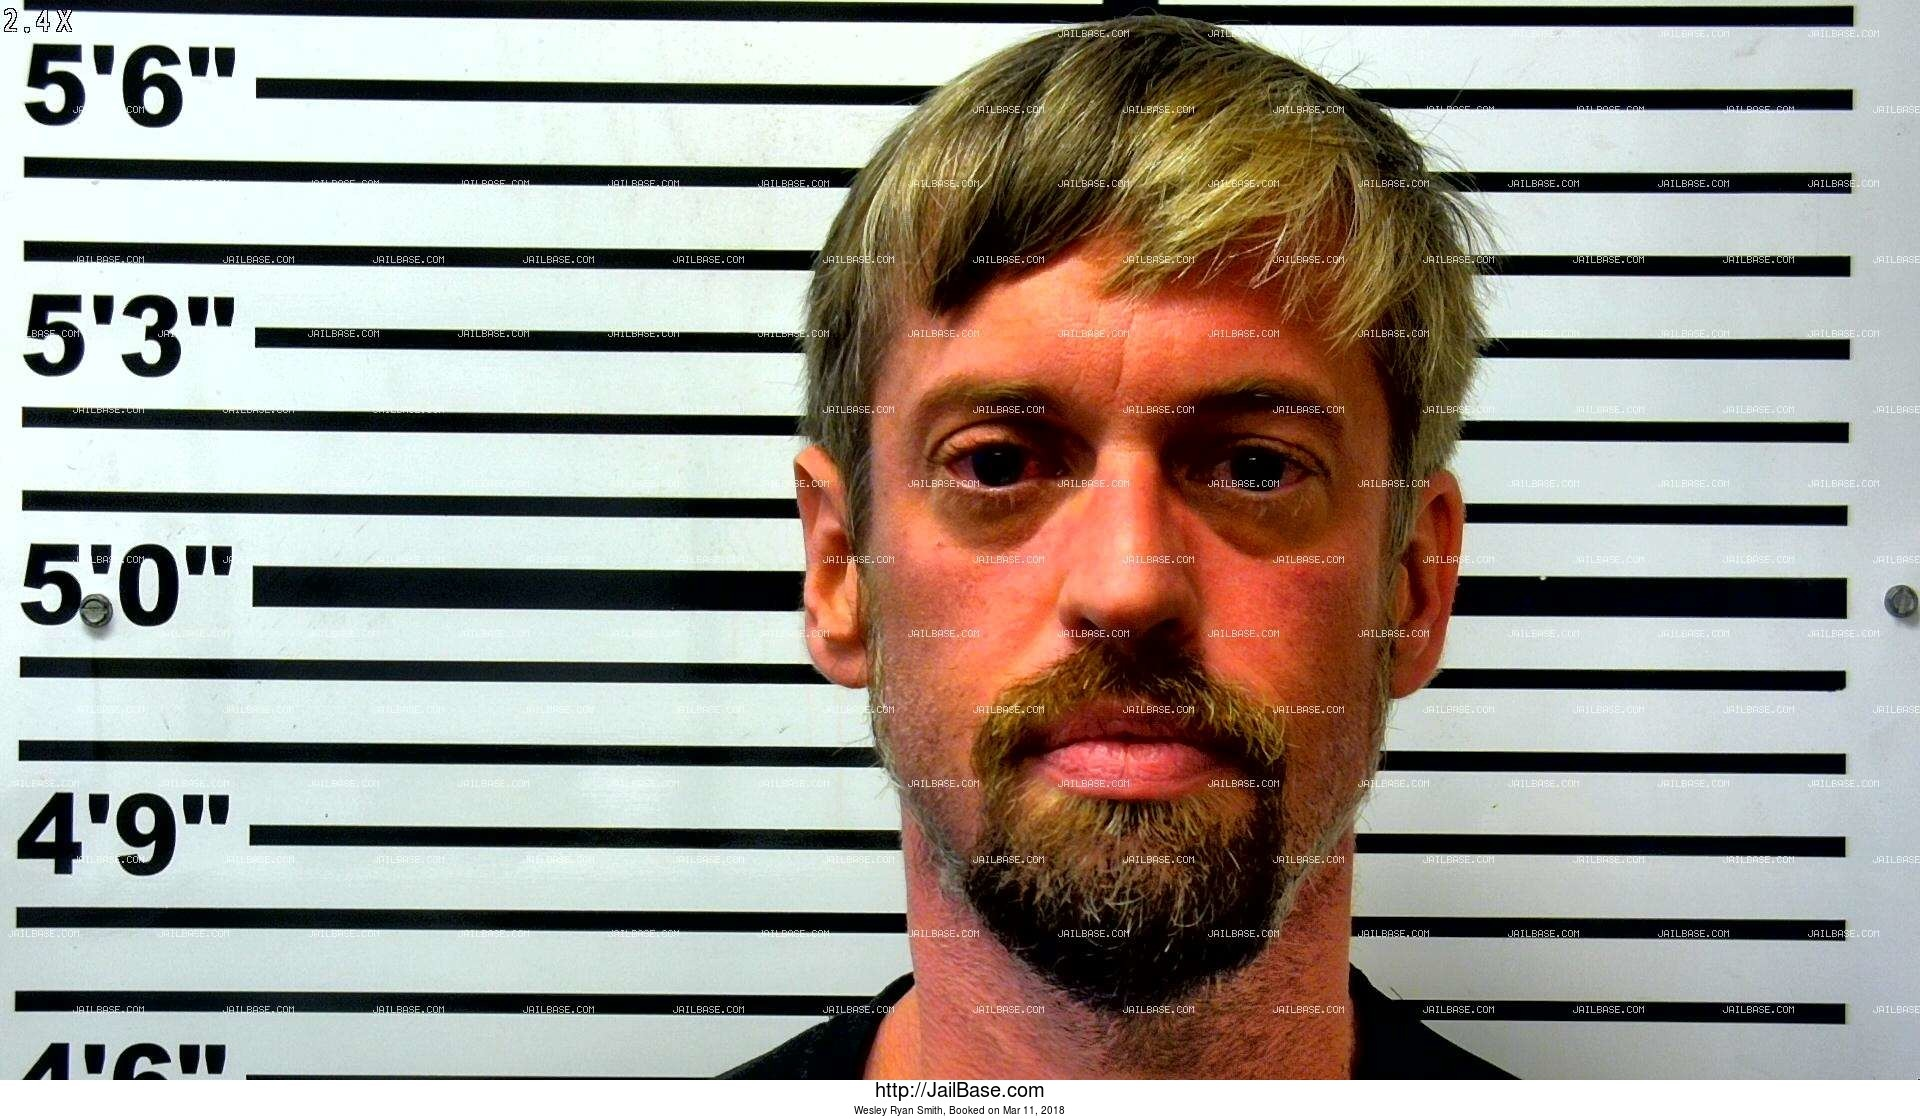 wesley ryan smith mugshot picture